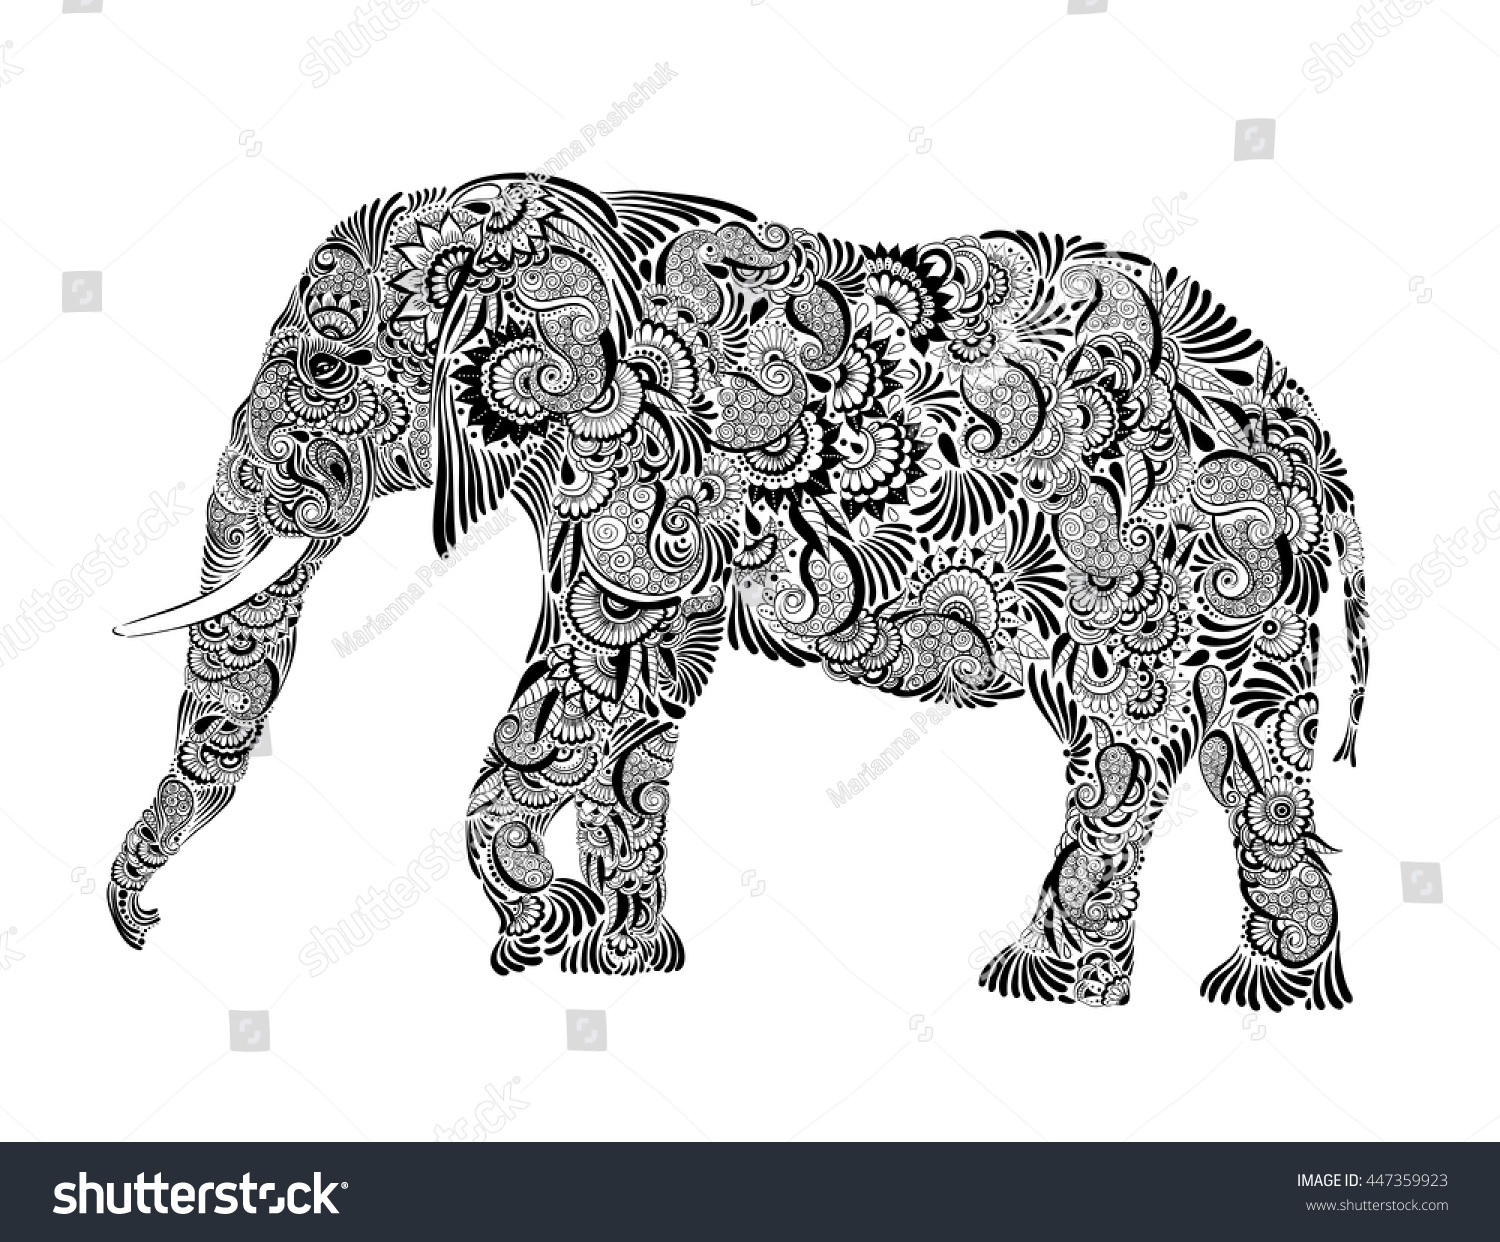 royalty free floral patterned elephant hand drawn 447359923 stock